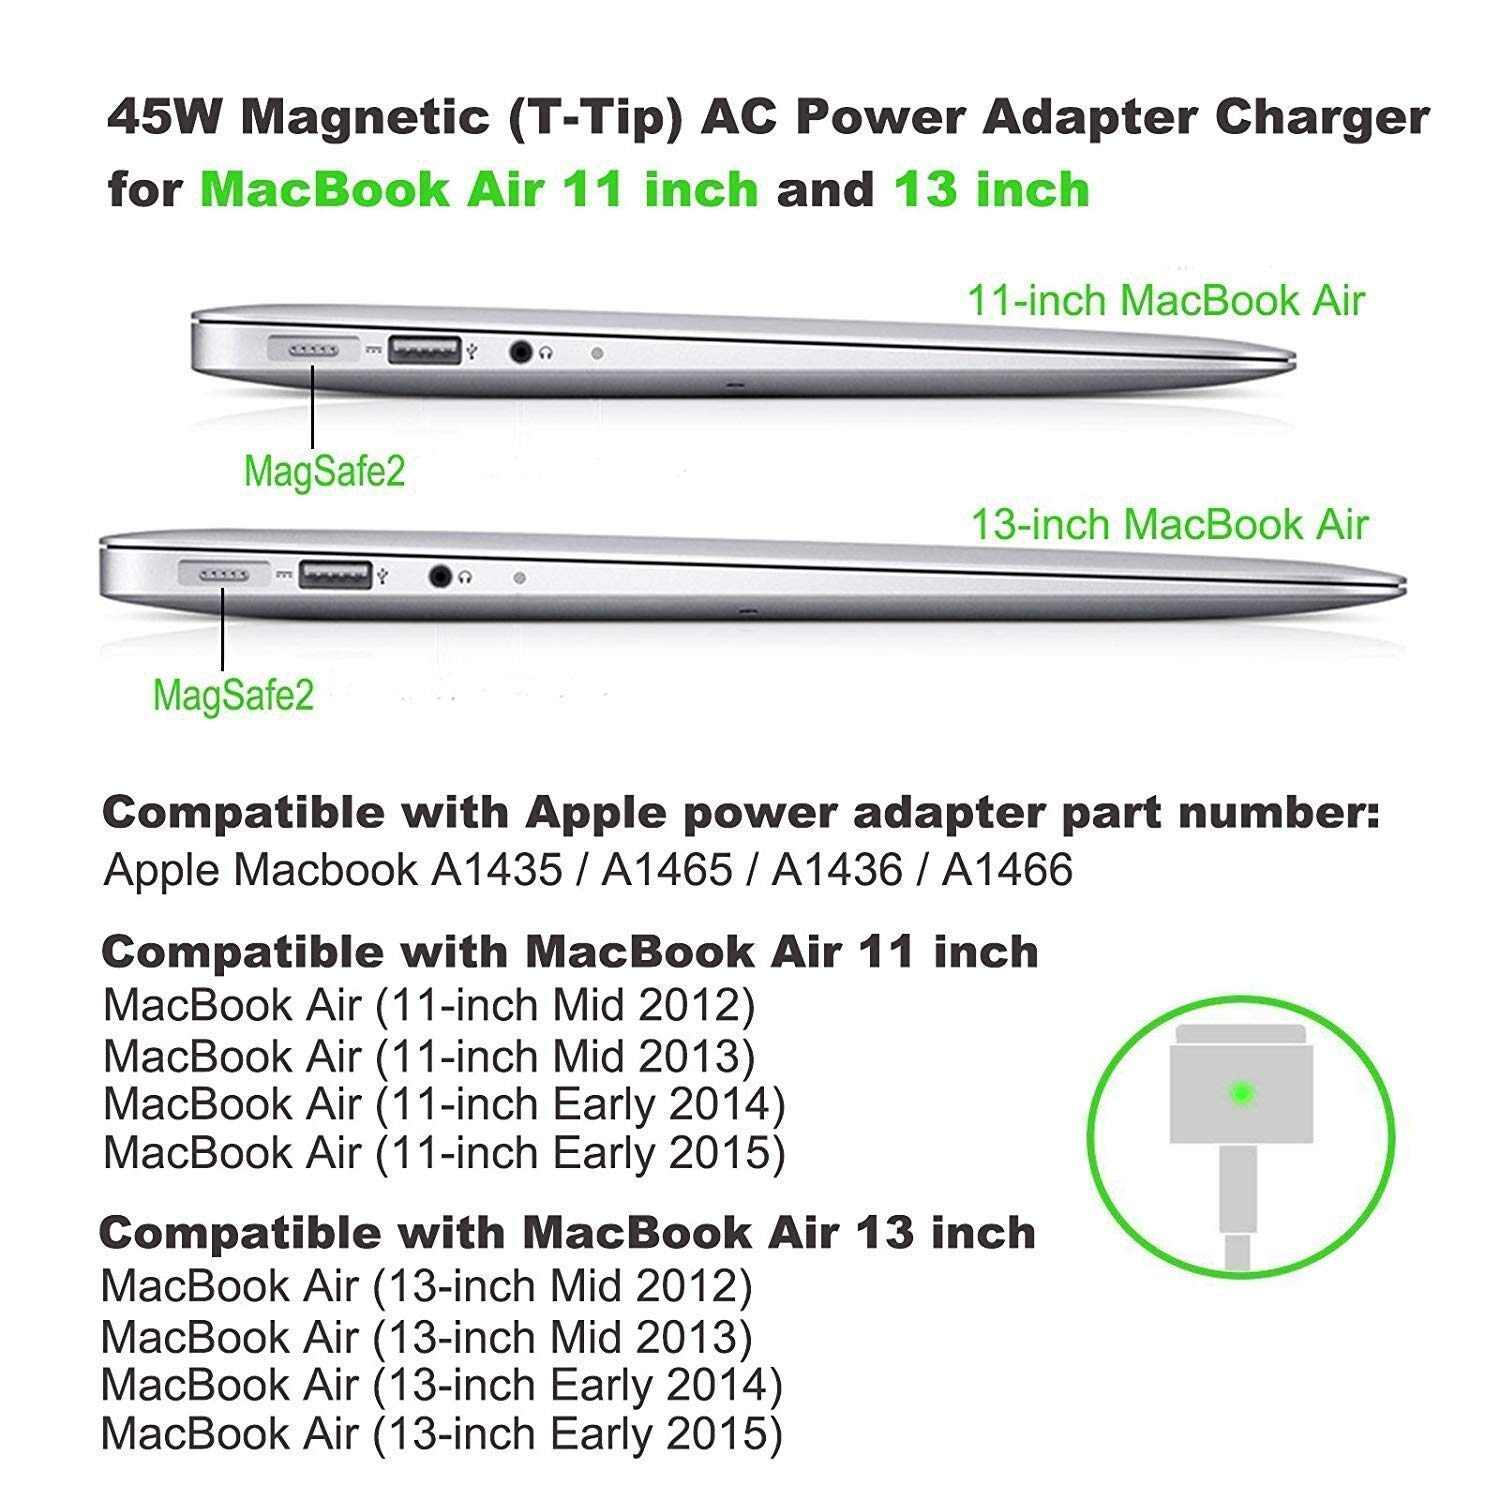 Mac-Book Air Charger 45W Magsafe 2 Power Adapter Magnetic T-Tip Replacement Charger for MacBook Air 11 inch and 13 inch (After Mid 2012) by DODAUG (Image #5)